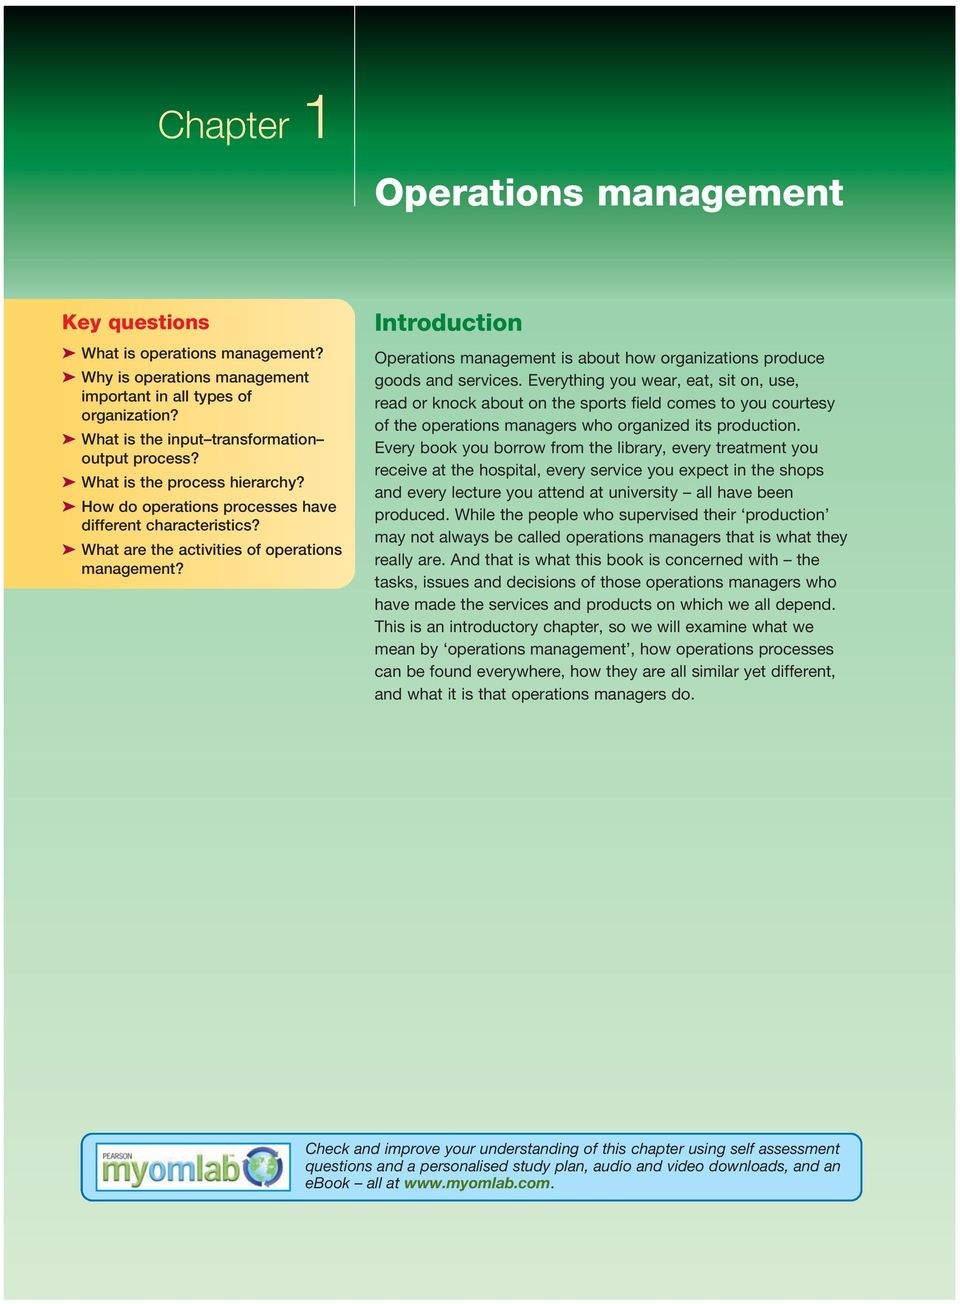 importance of operation management in an organization